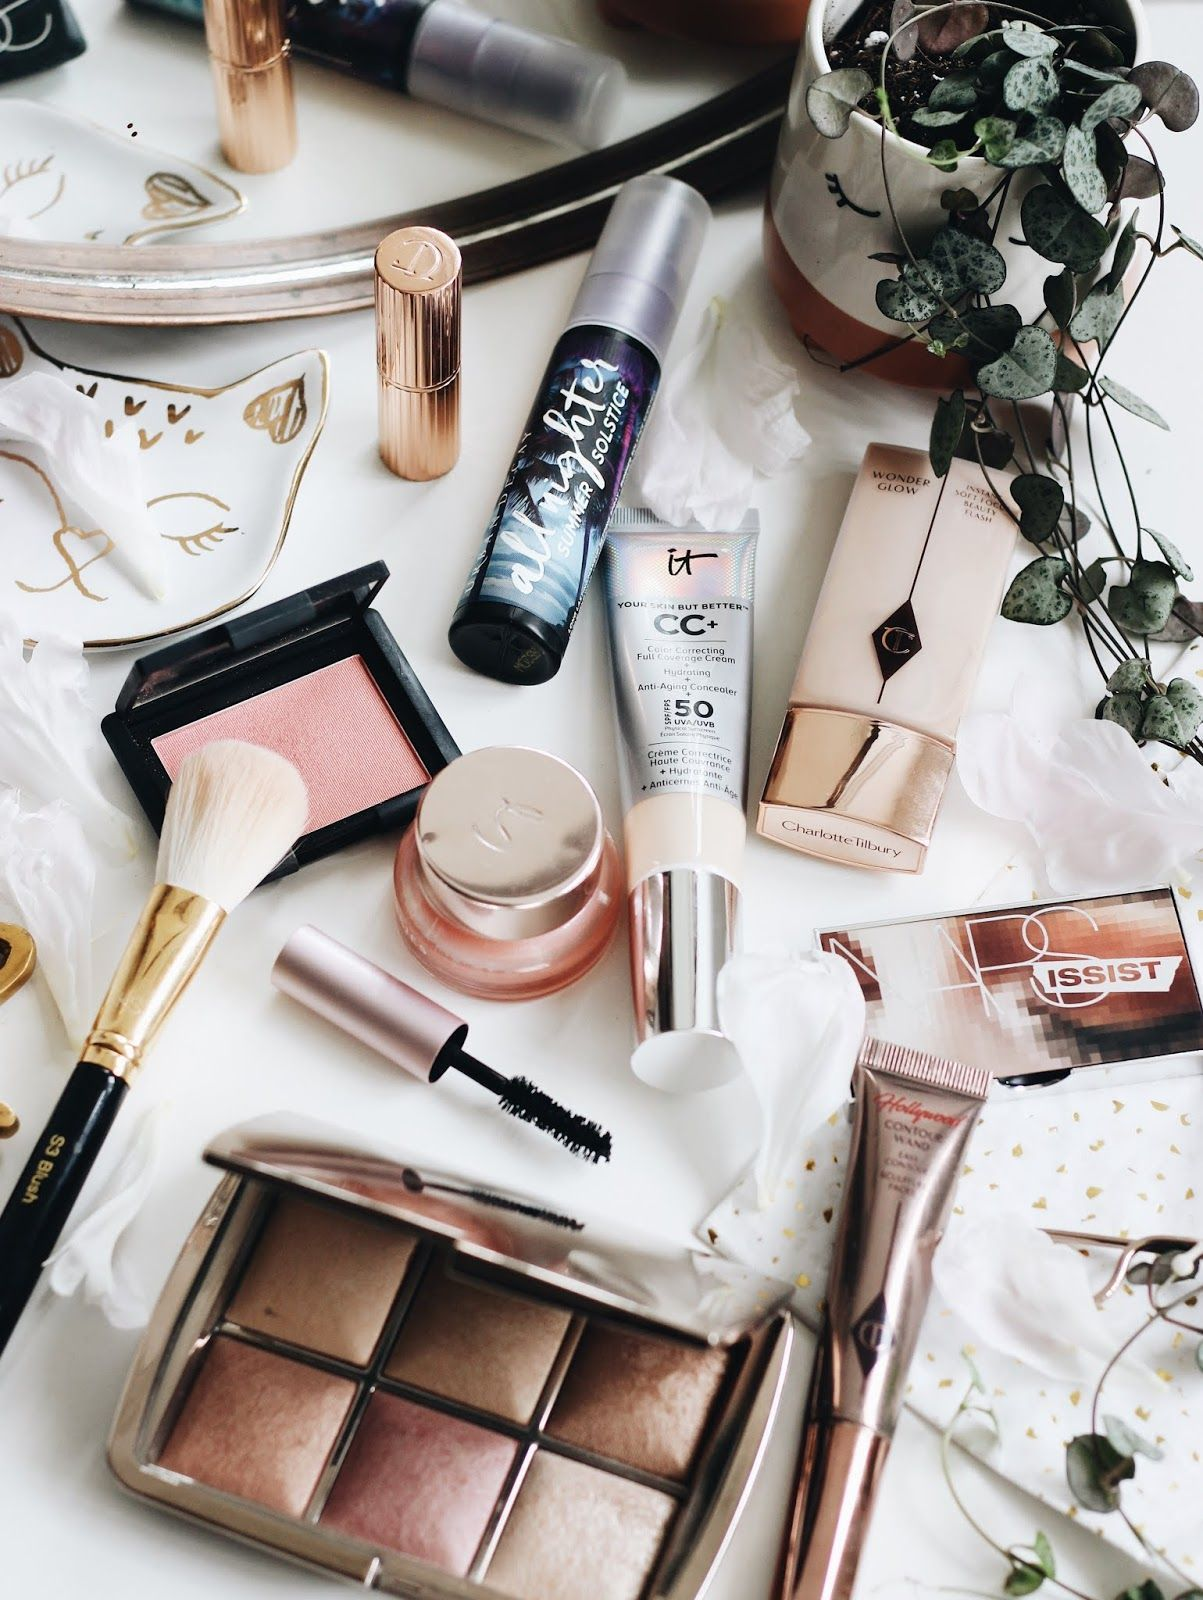 A Daily Everyday Makeup Routine #style #shopping #styles #outfit #pretty #girl #girls #beauty #beautiful #me #cute #stylish #photooftheday #swag #dress #shoes #diy #design #fashion #Makeup